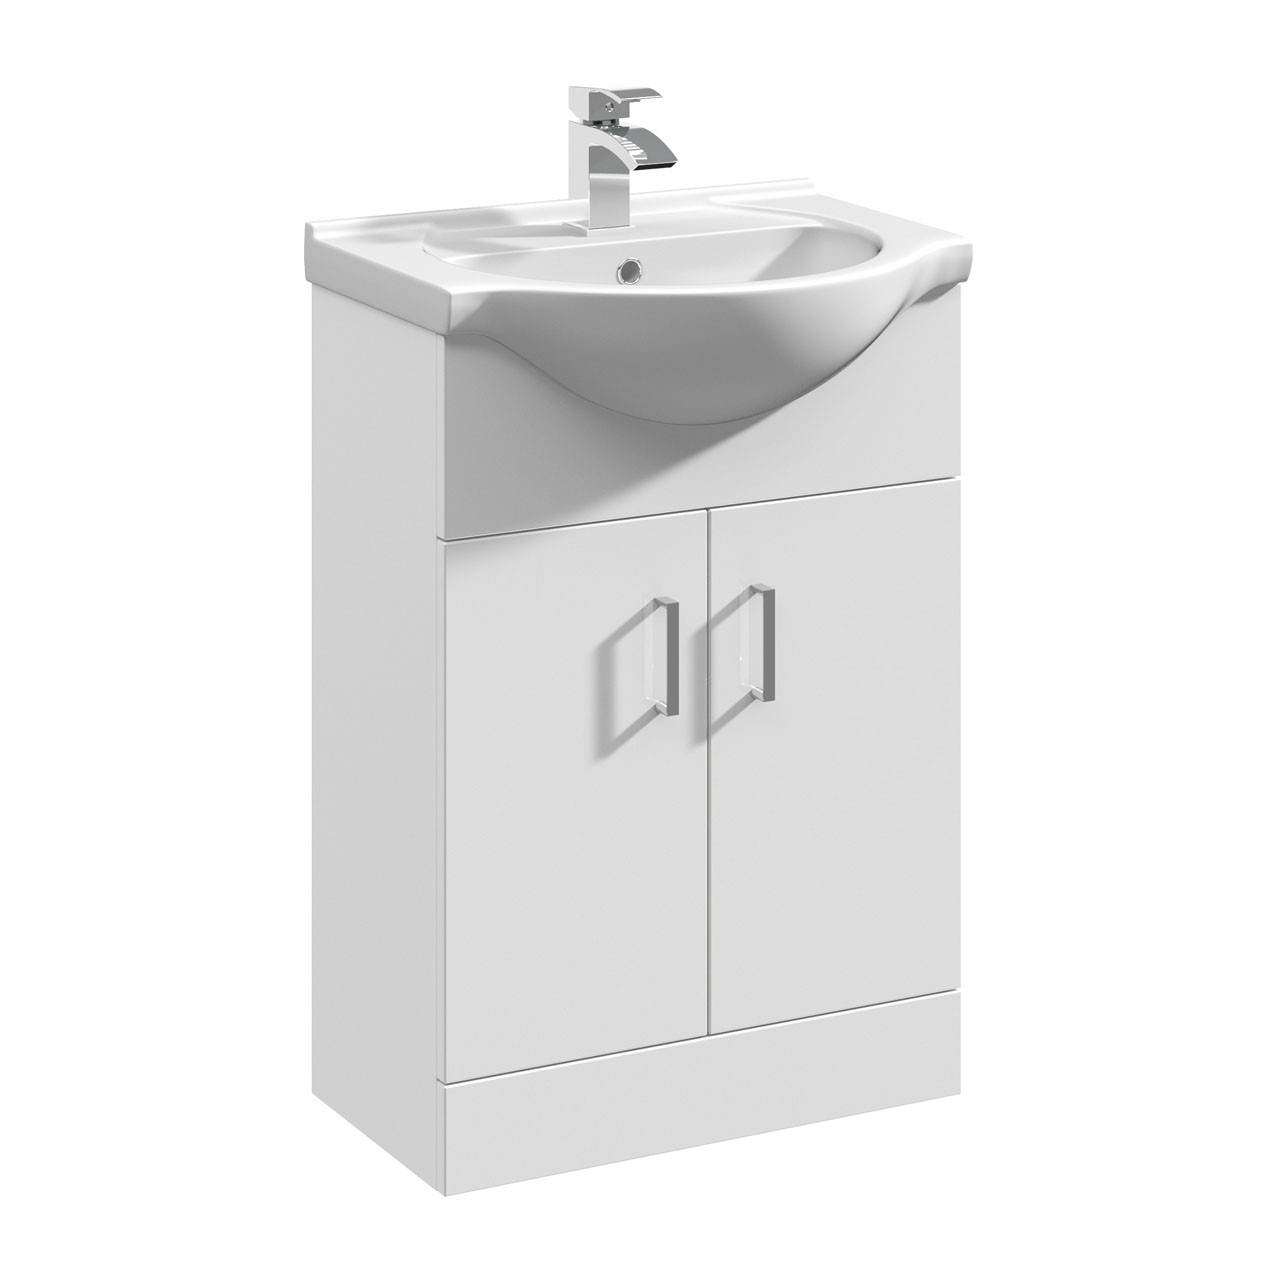 Premier Mayford Gloss White 550mm Vanity Unit and Curved Basin with 1 Tap Hole - VTY550